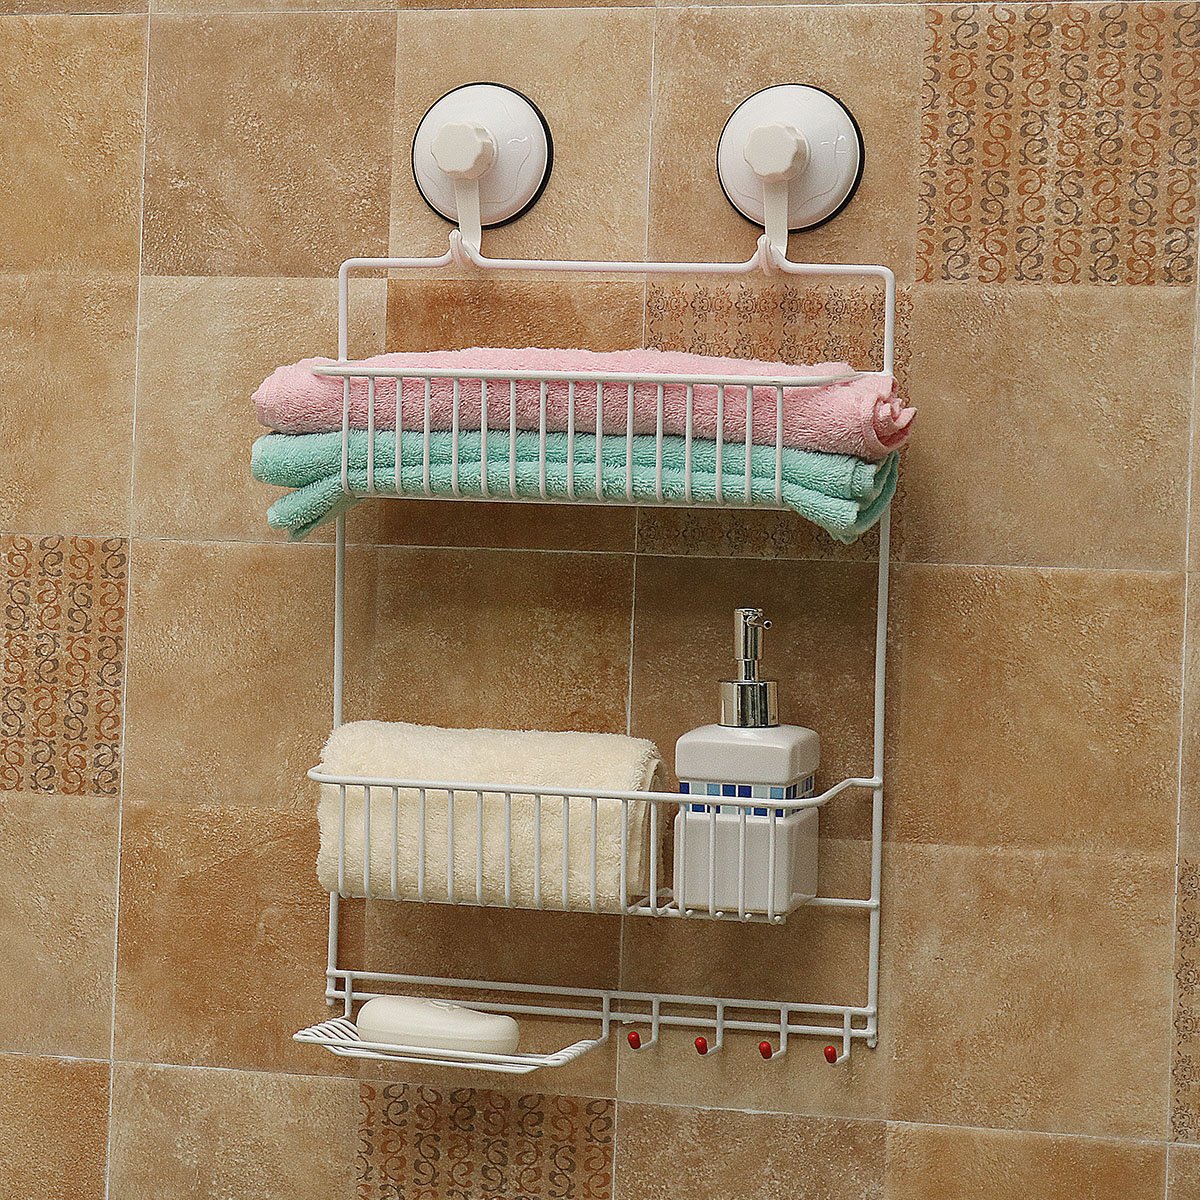 White 2 Tier Wall Shelf Concise Bathroom Wall Mounted Storage Rack With Hooks